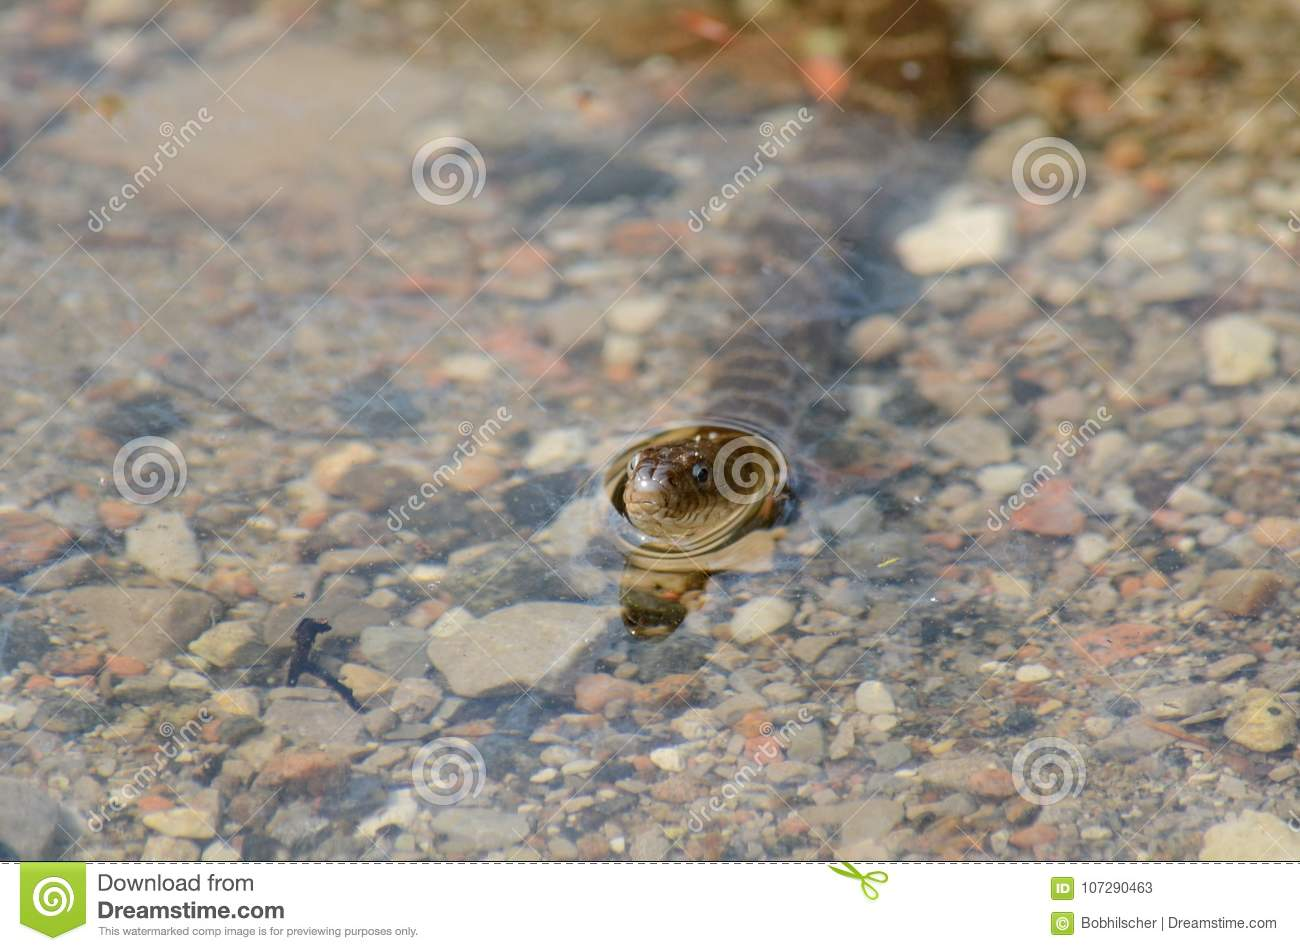 Northern Water Snake in a lake